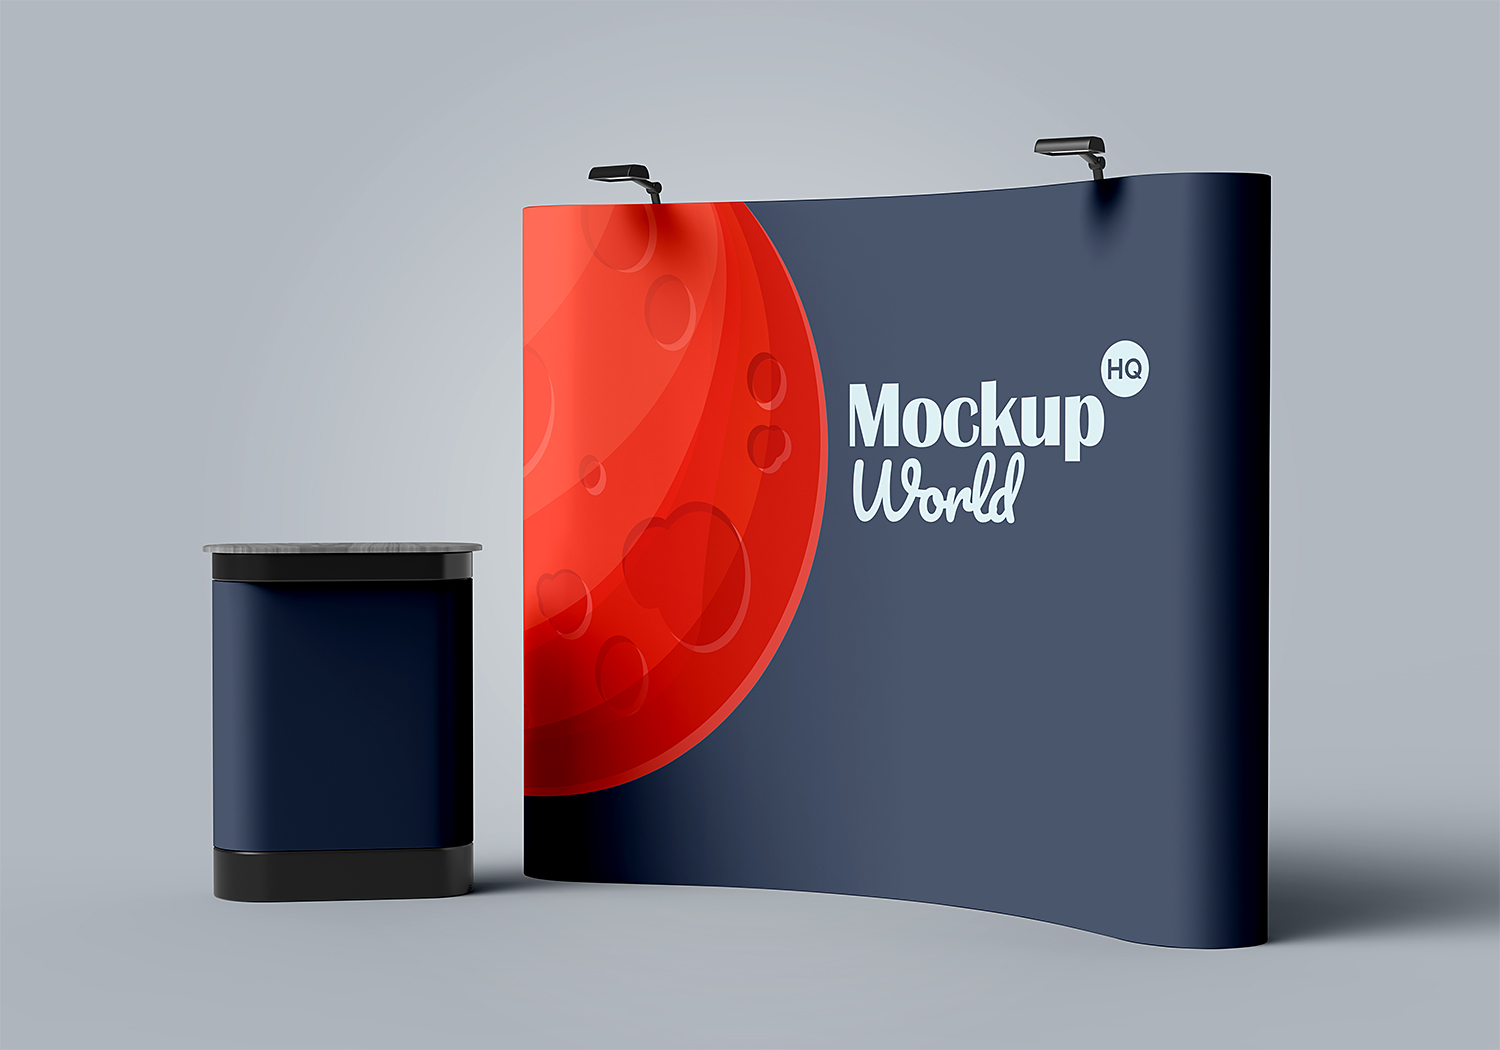 Exhibition Booth Stand : 🔥 trade show exhibition booth stand mockup mockup world hq